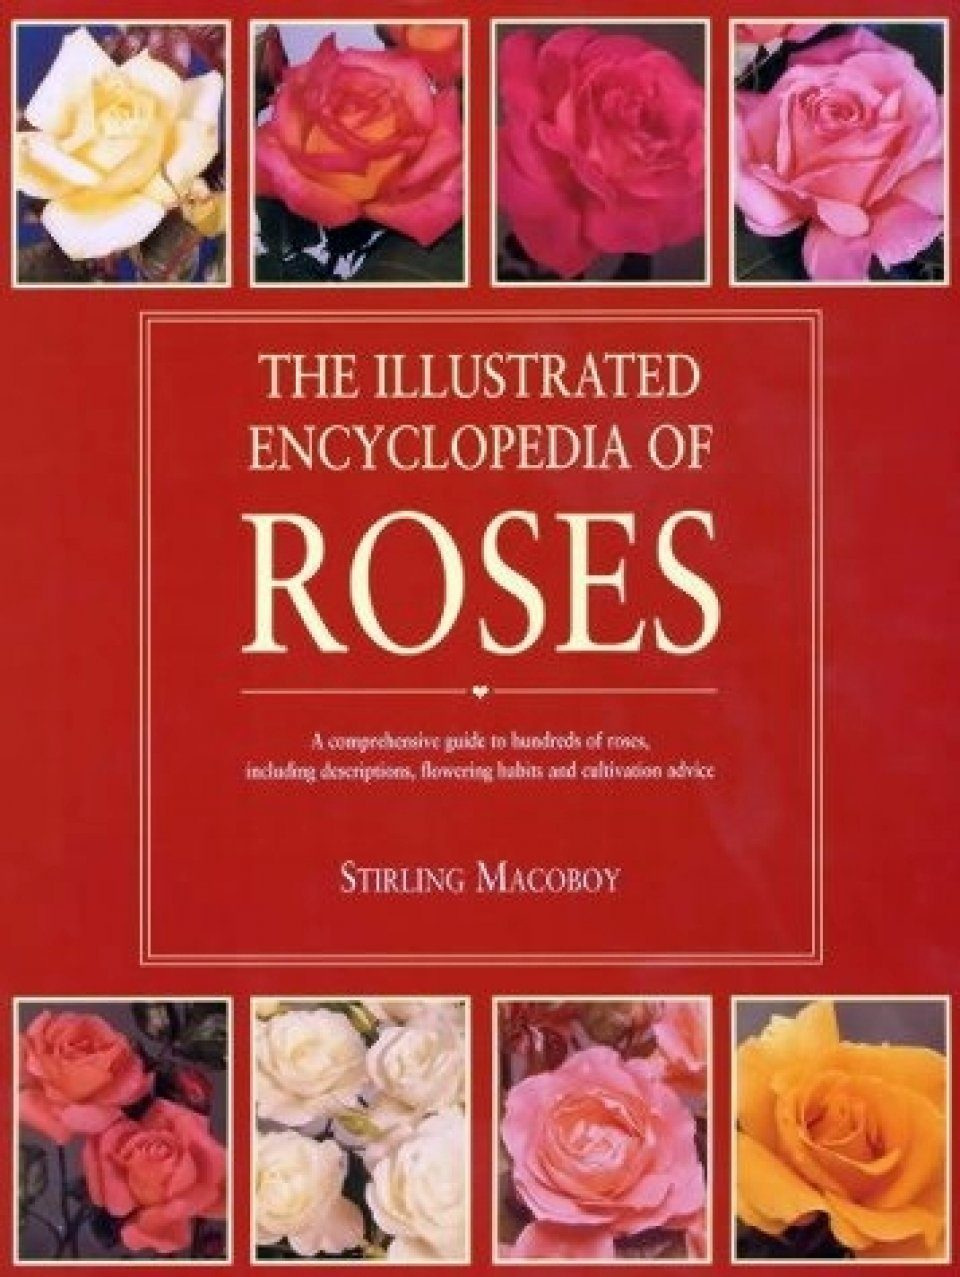 Illustrated Encyclopaedia of Roses